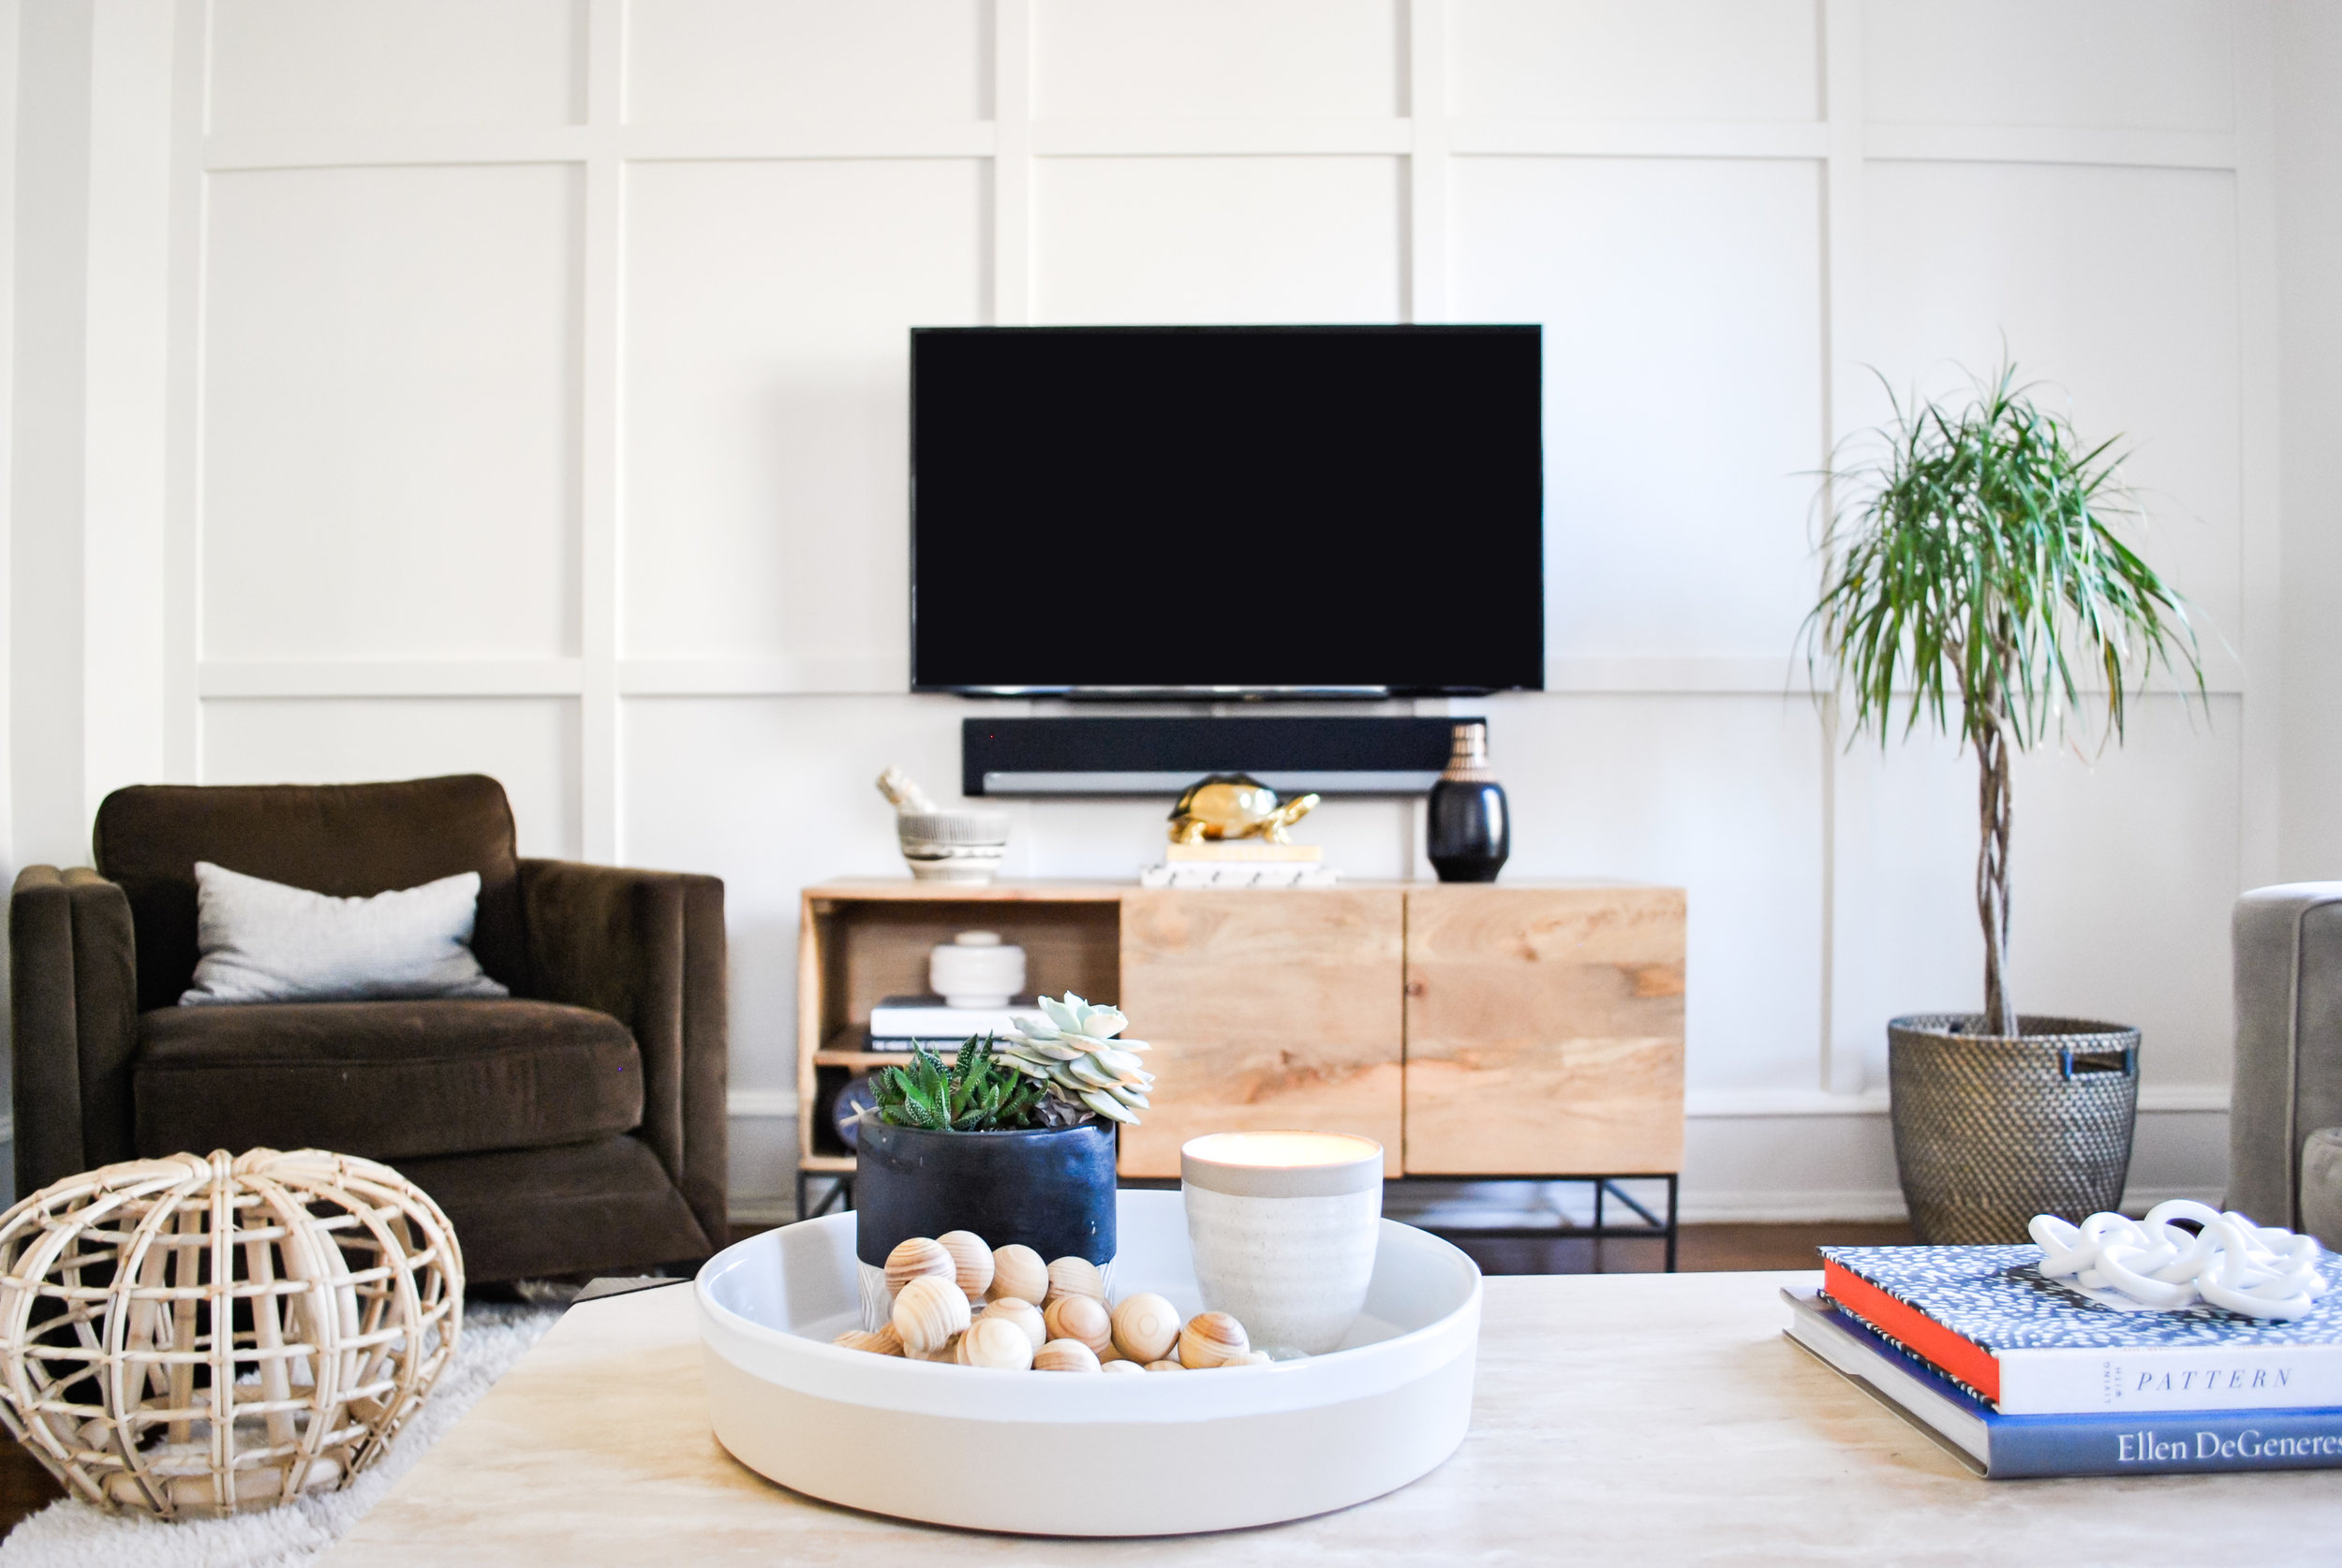 How to create a DIY Focal wall in a weekend for $200